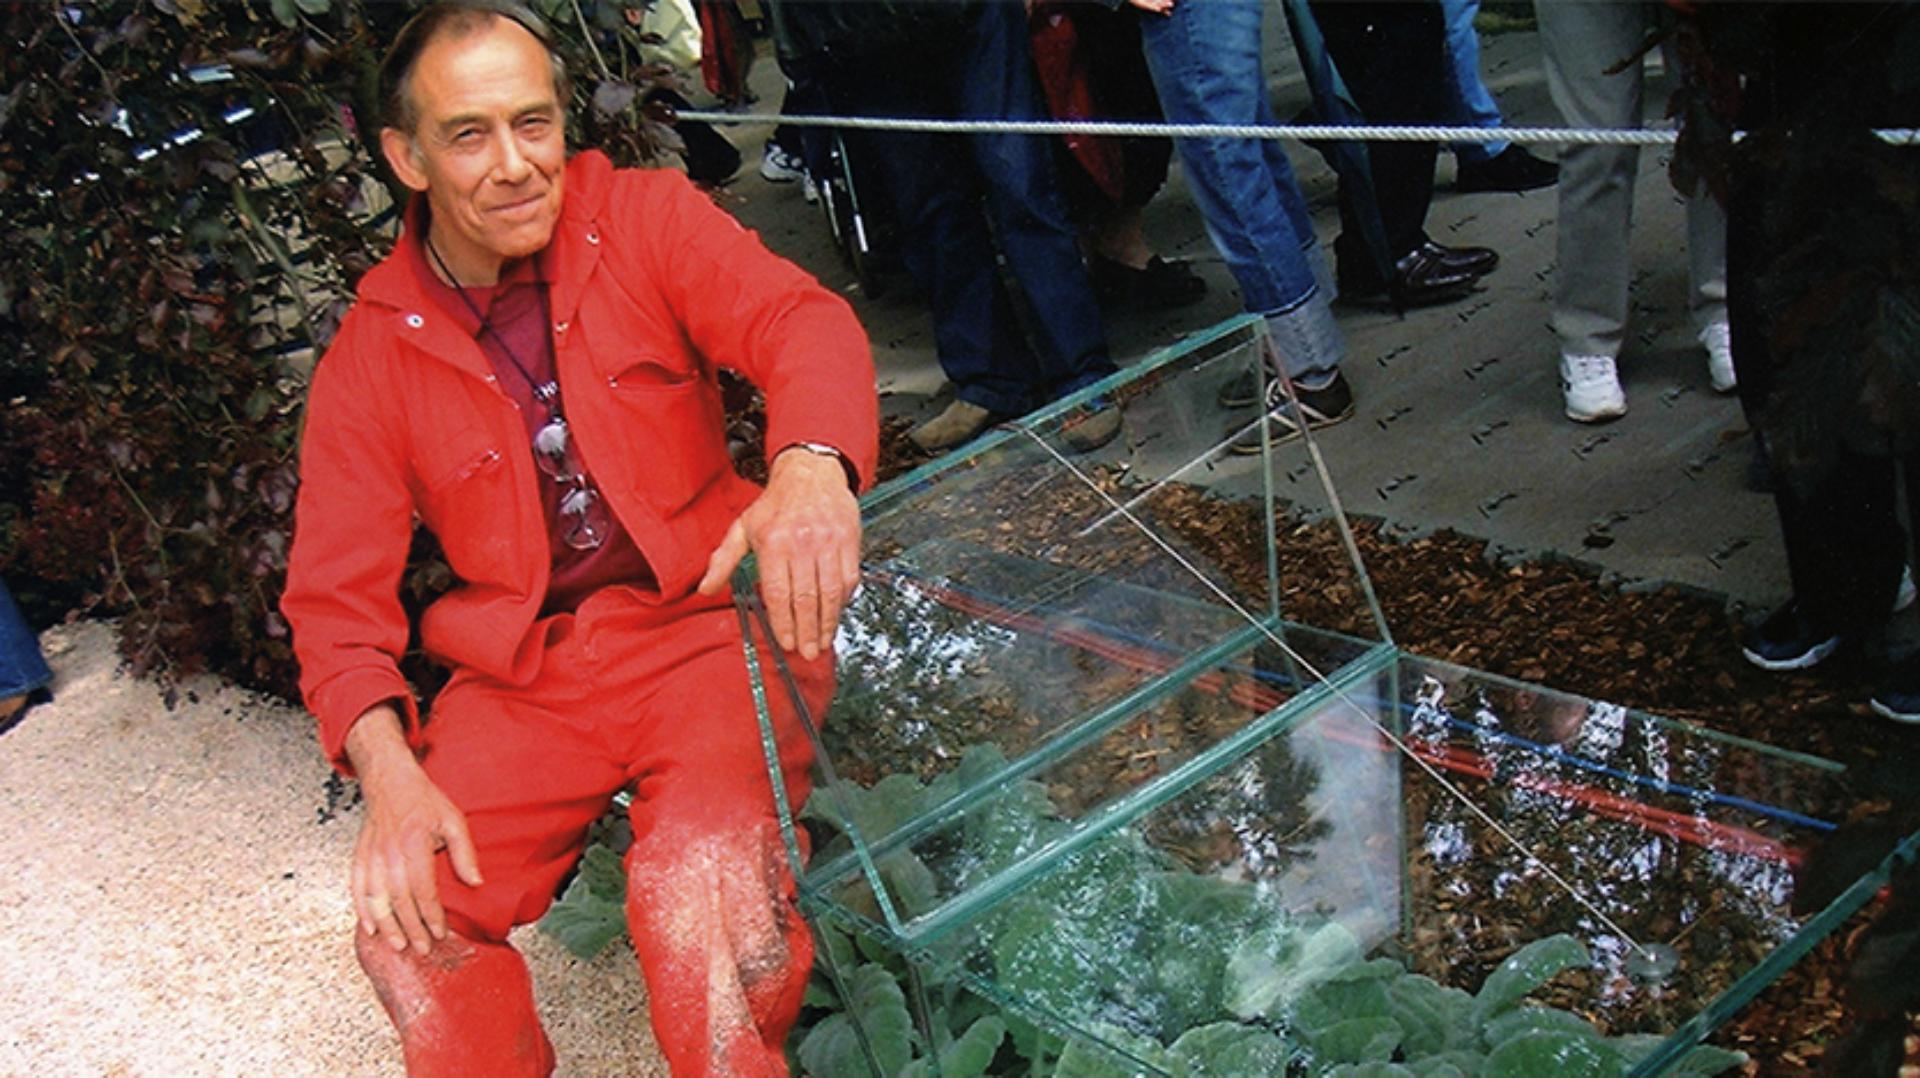 Derek Phillips sitting on an 'impossible' glass bench